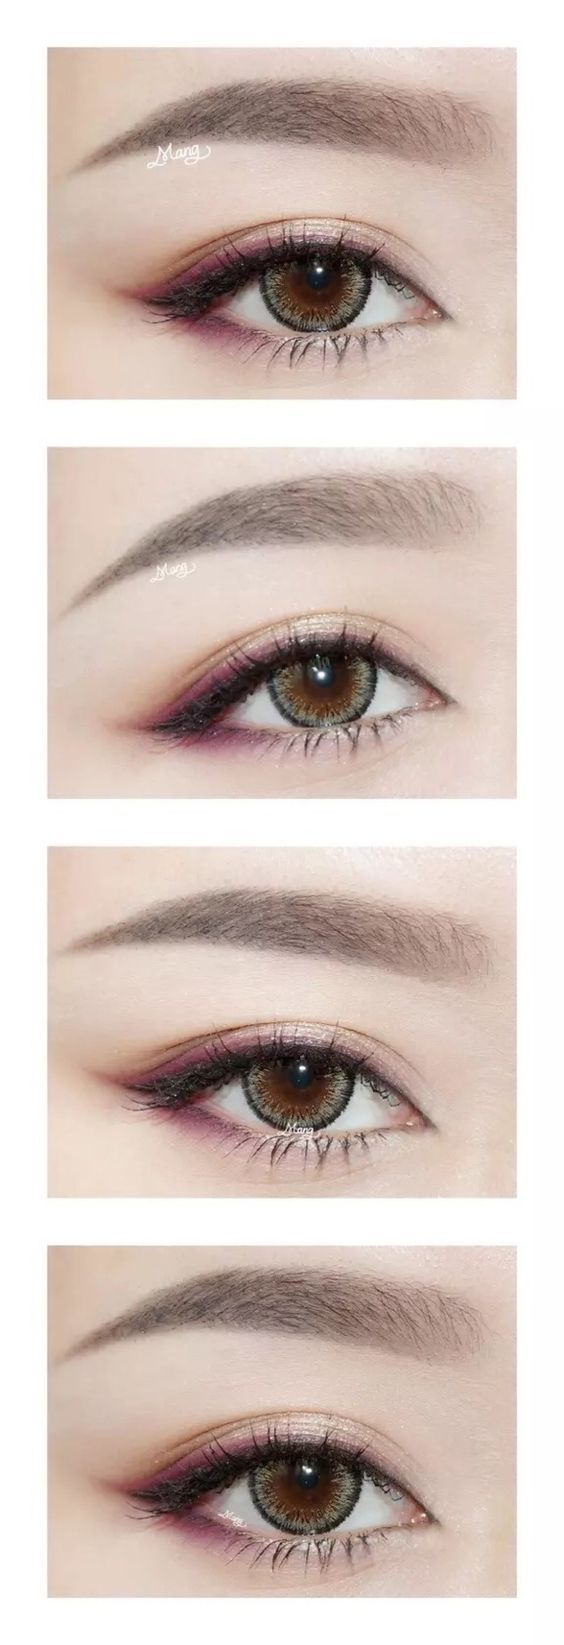 Sexy eye make up #make up #idea Beauty & Personal Care - Makeup - Eyes - Eyeshadow - eye makeup - http://amzn.to/2l800NJhttp://amzn.to/2fBNLpy